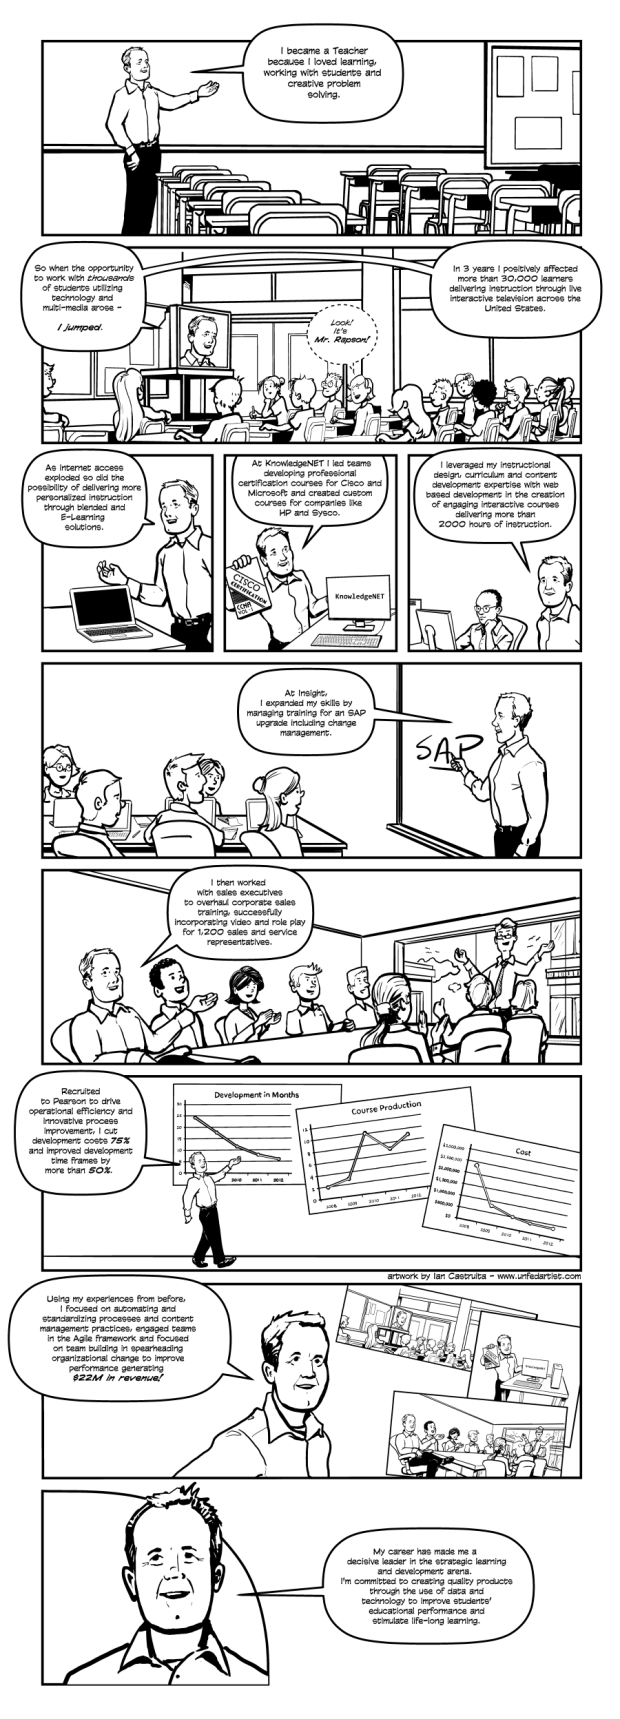 20140307 - WEBRES - Jay Rapson Career Comic - 100% Final Draft - 900